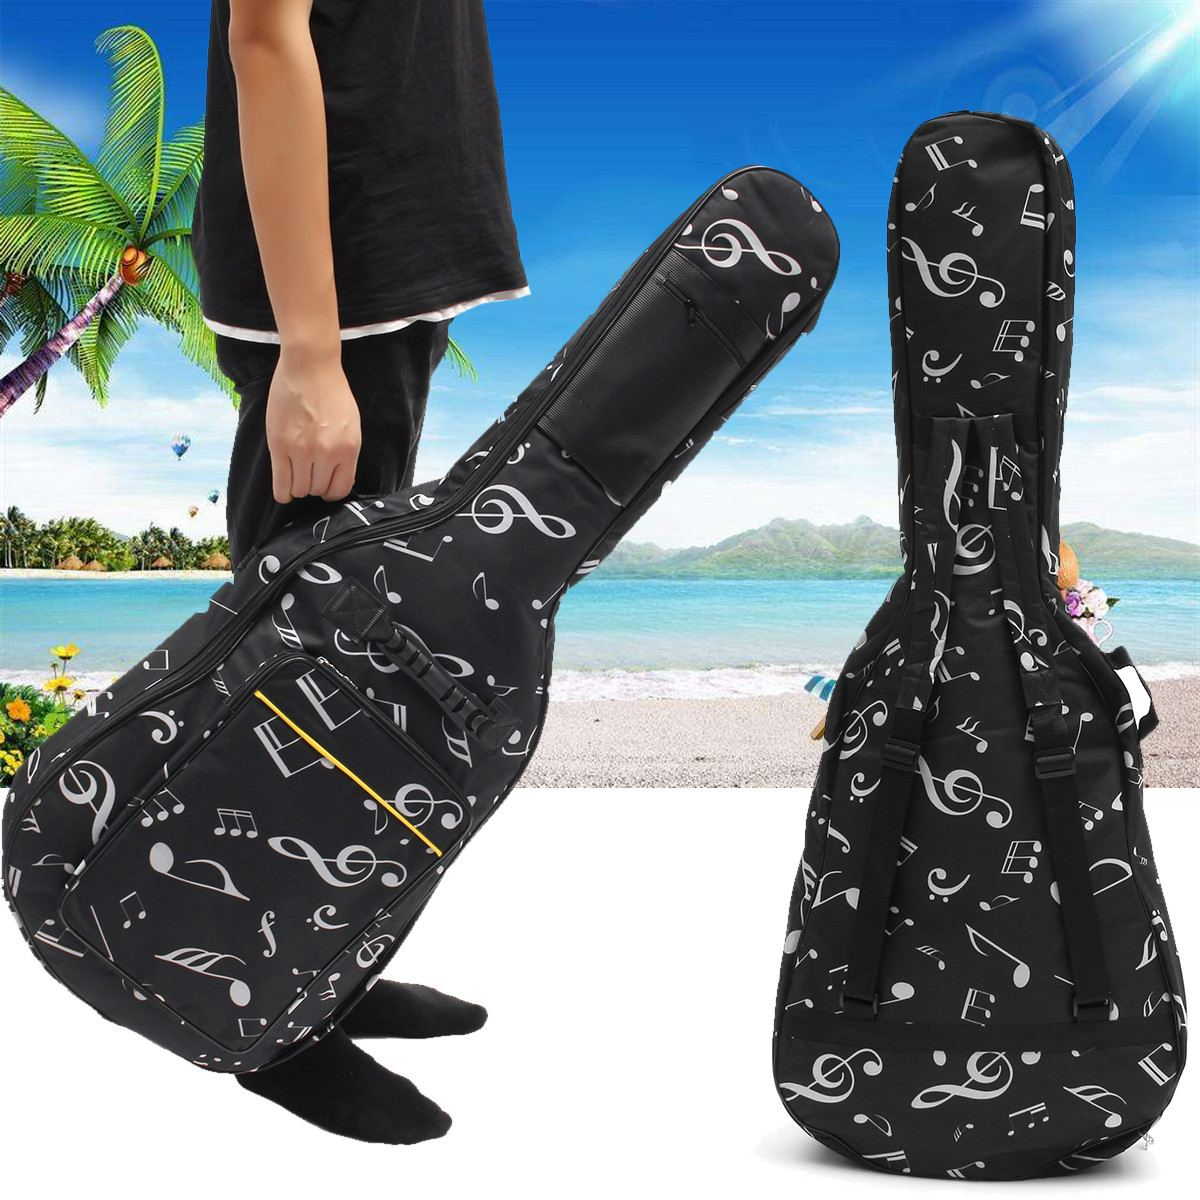 Waterproof <font><b>Guitar</b></font> Bag Double Straps Padded With Musical Notes Soft <font><b>Case</b></font> for 39 / <font><b>40</b></font> / 41 Inch <font><b>Guitar</b></font> Gig Bag image